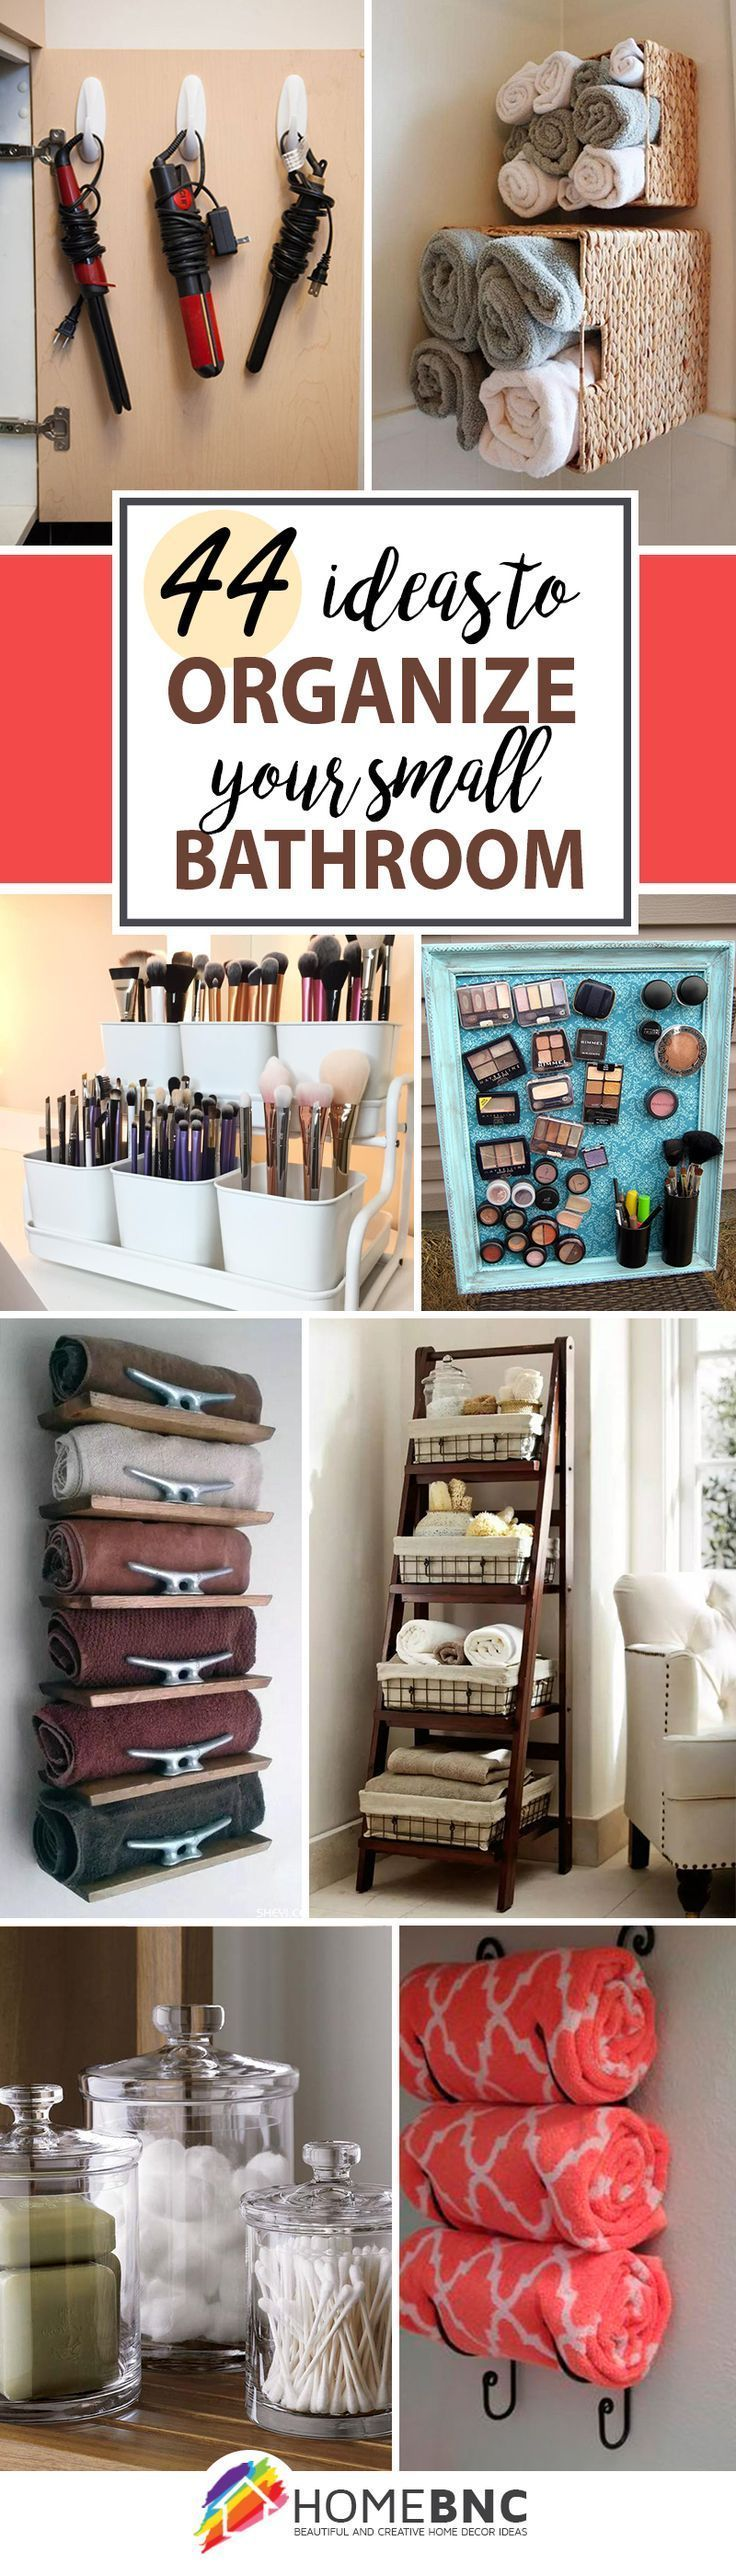 Unique Storage Ideas For A Small Bathroom To Make Yours Bigger - Bathroom shelving ideas for towels for small bathroom ideas